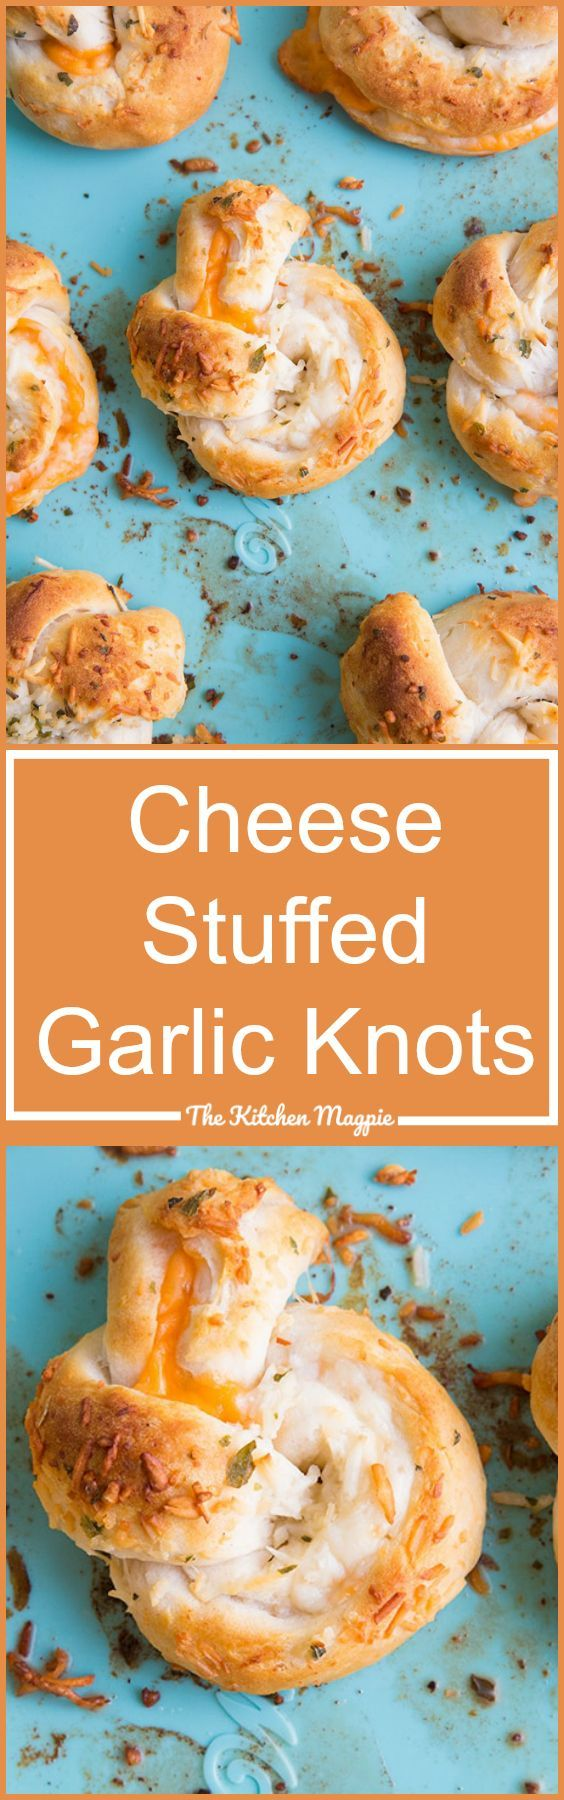 Easy Cheese Stuffed Garlic Knots - The Kitchen Magpie